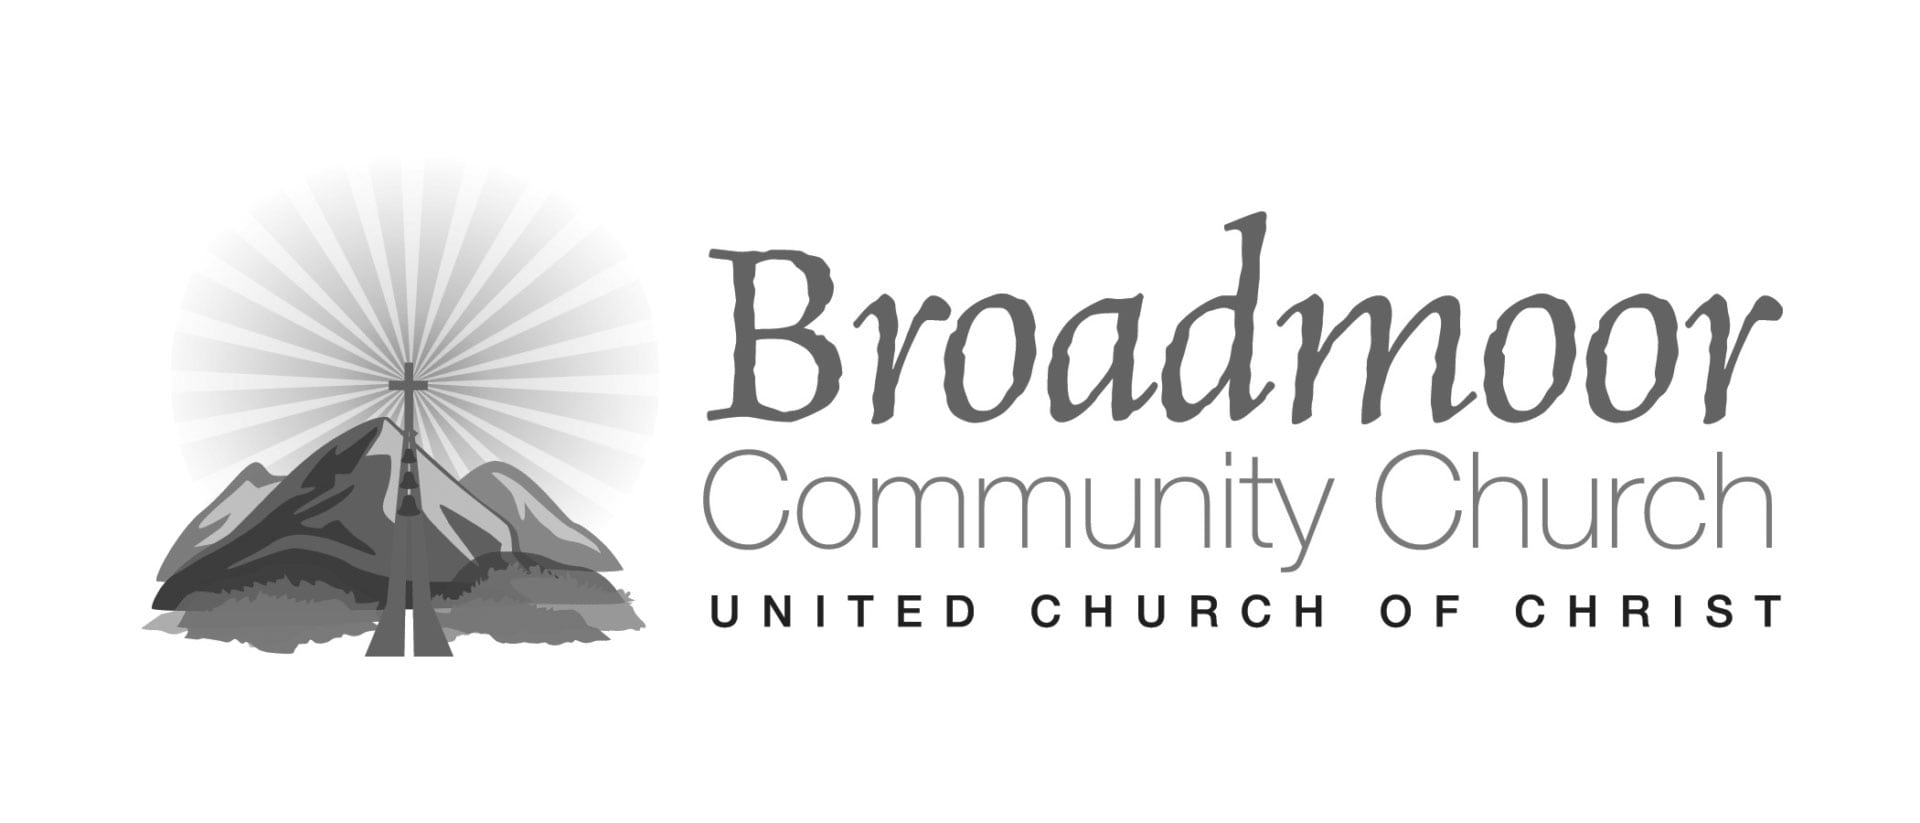 Broadmoor Community Church